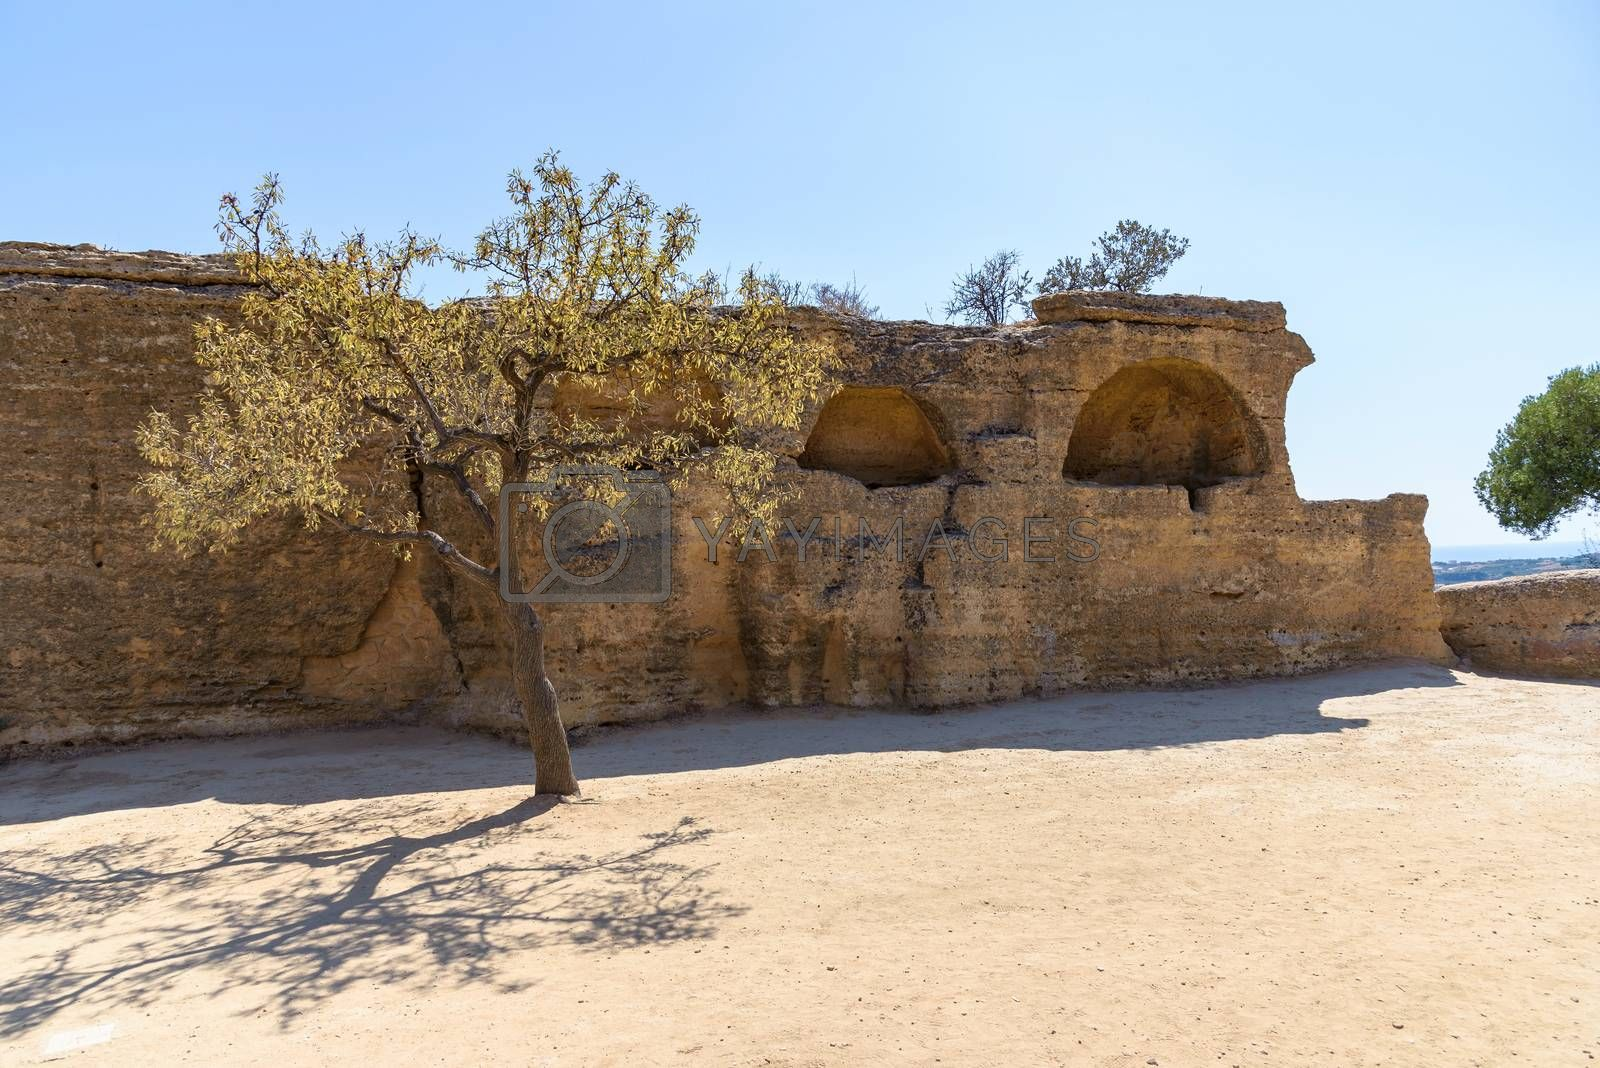 Remains of the greek fortifications of ancient Greek Akragas in the Valley of the Temples in Agrigento, Sicily, Italy